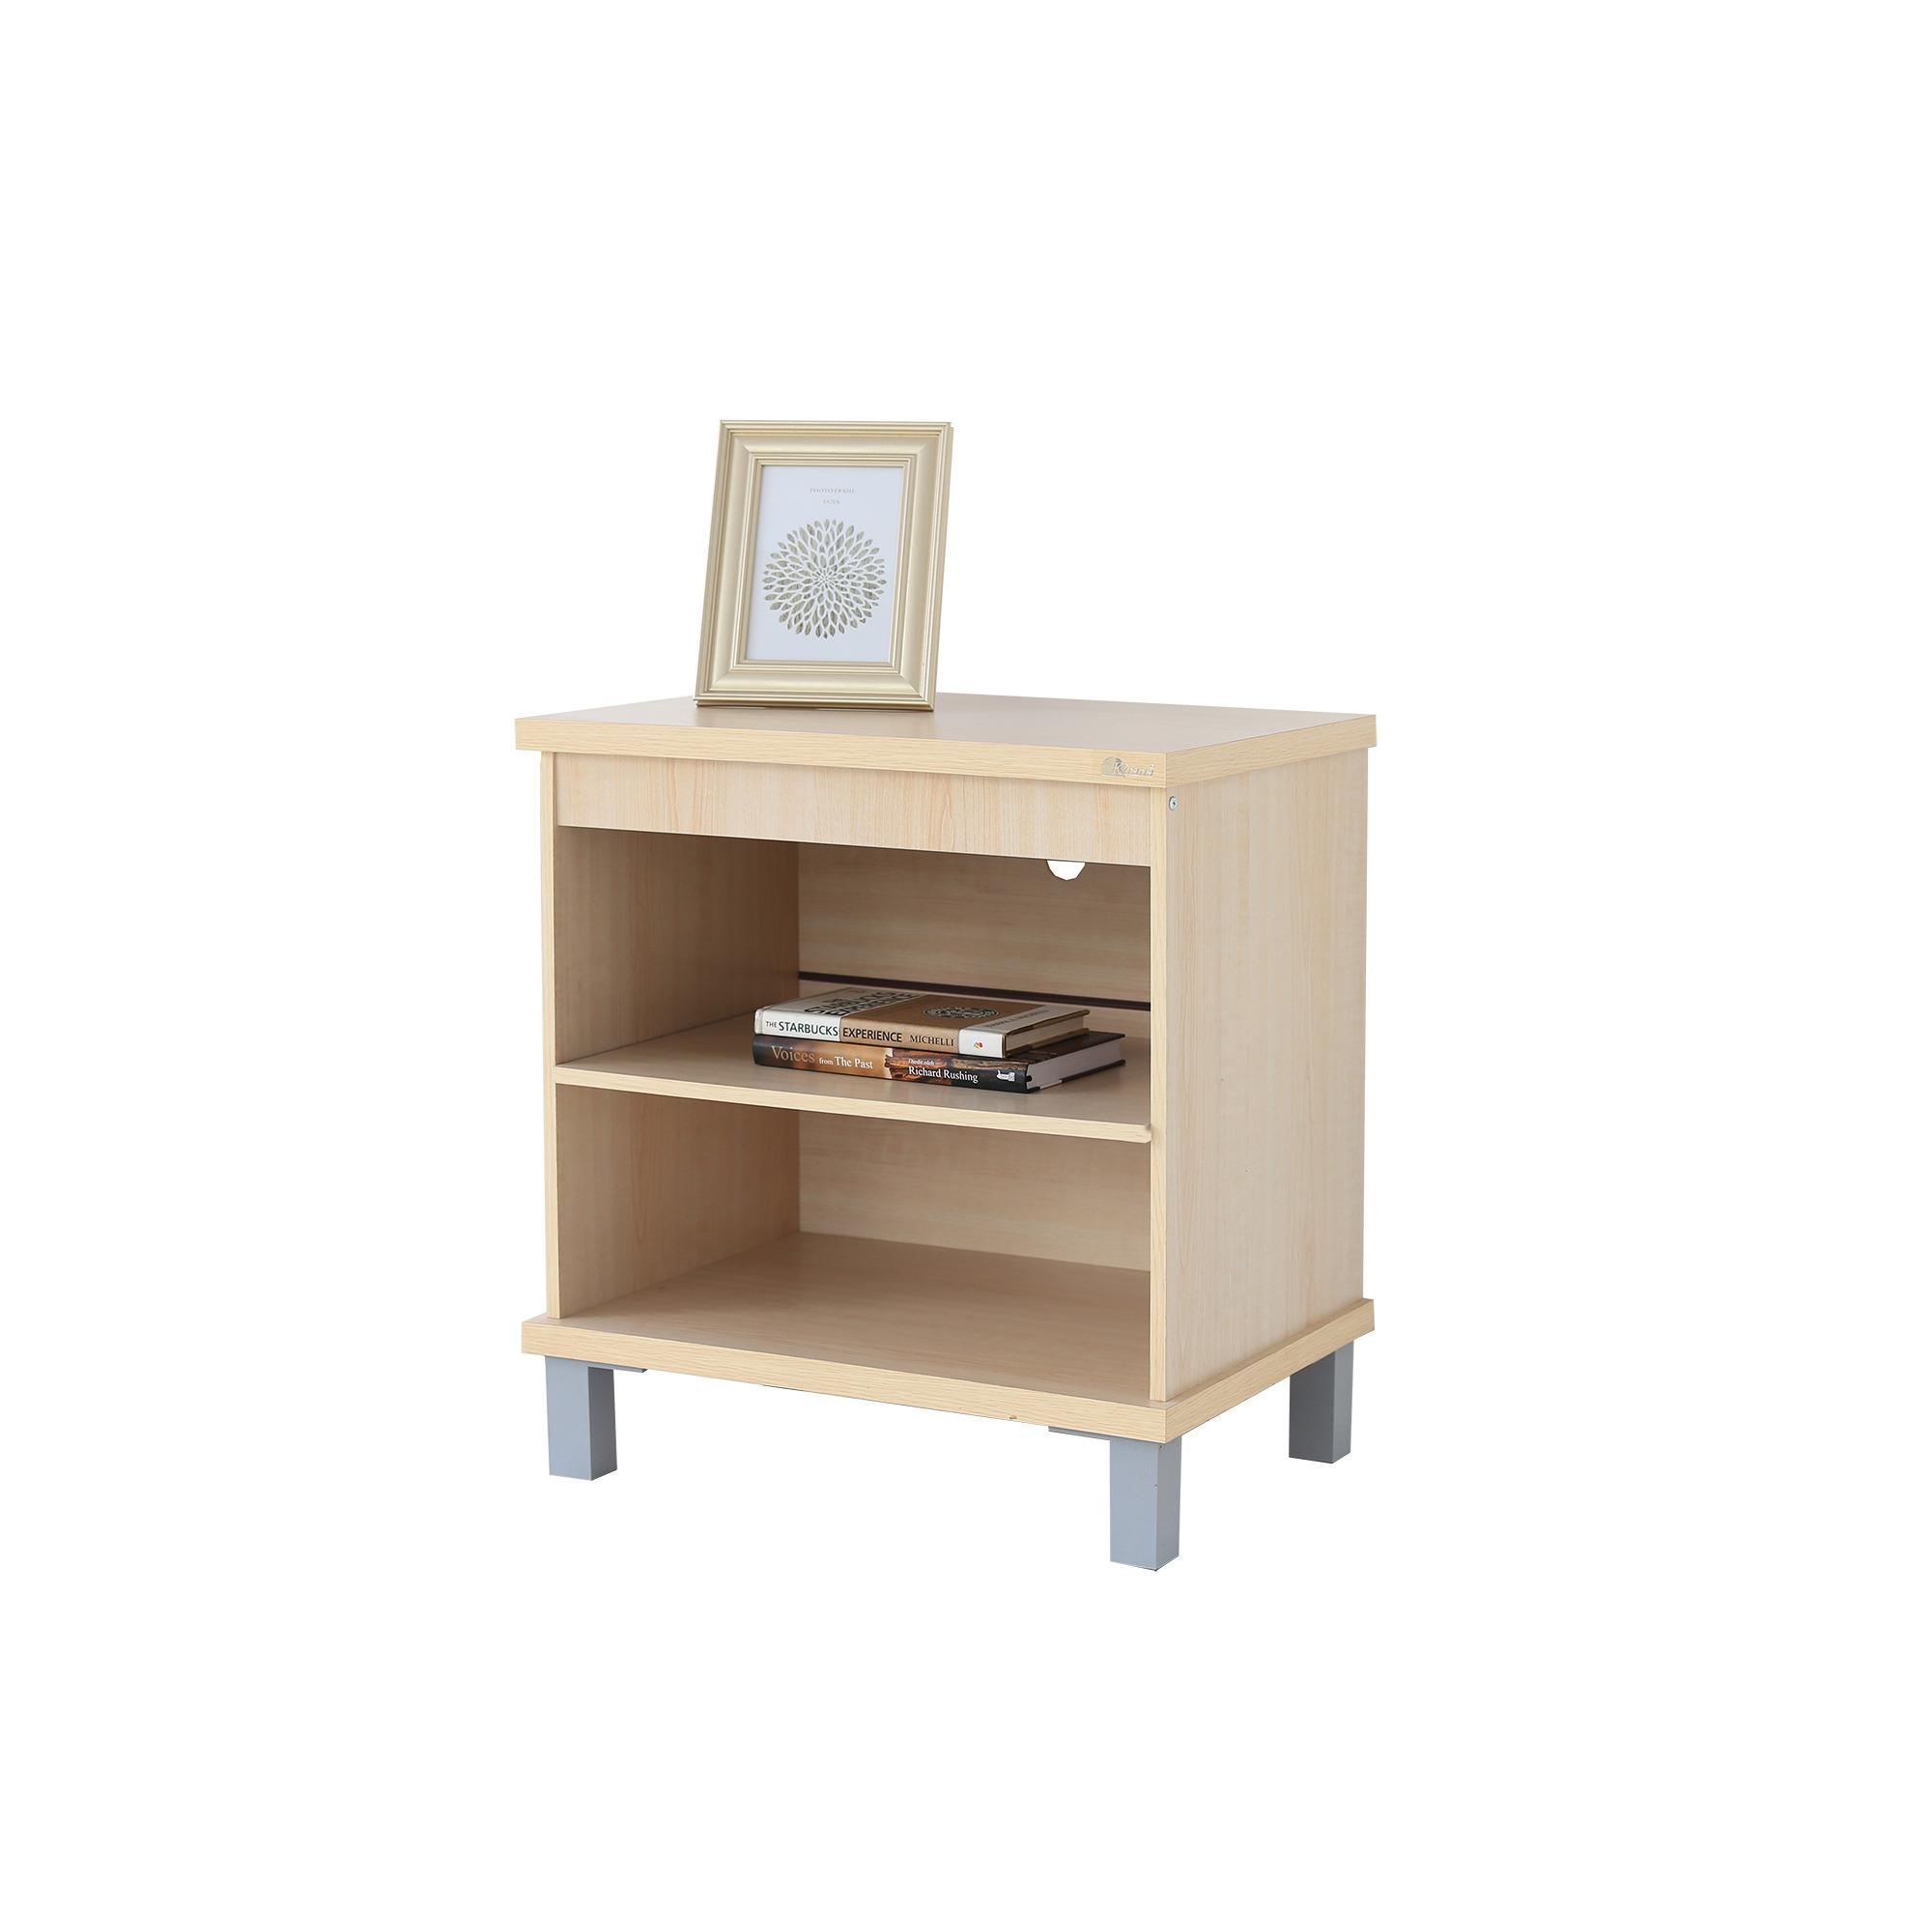 Kirana Rak TV / Audio BF 865 WO - White Oak